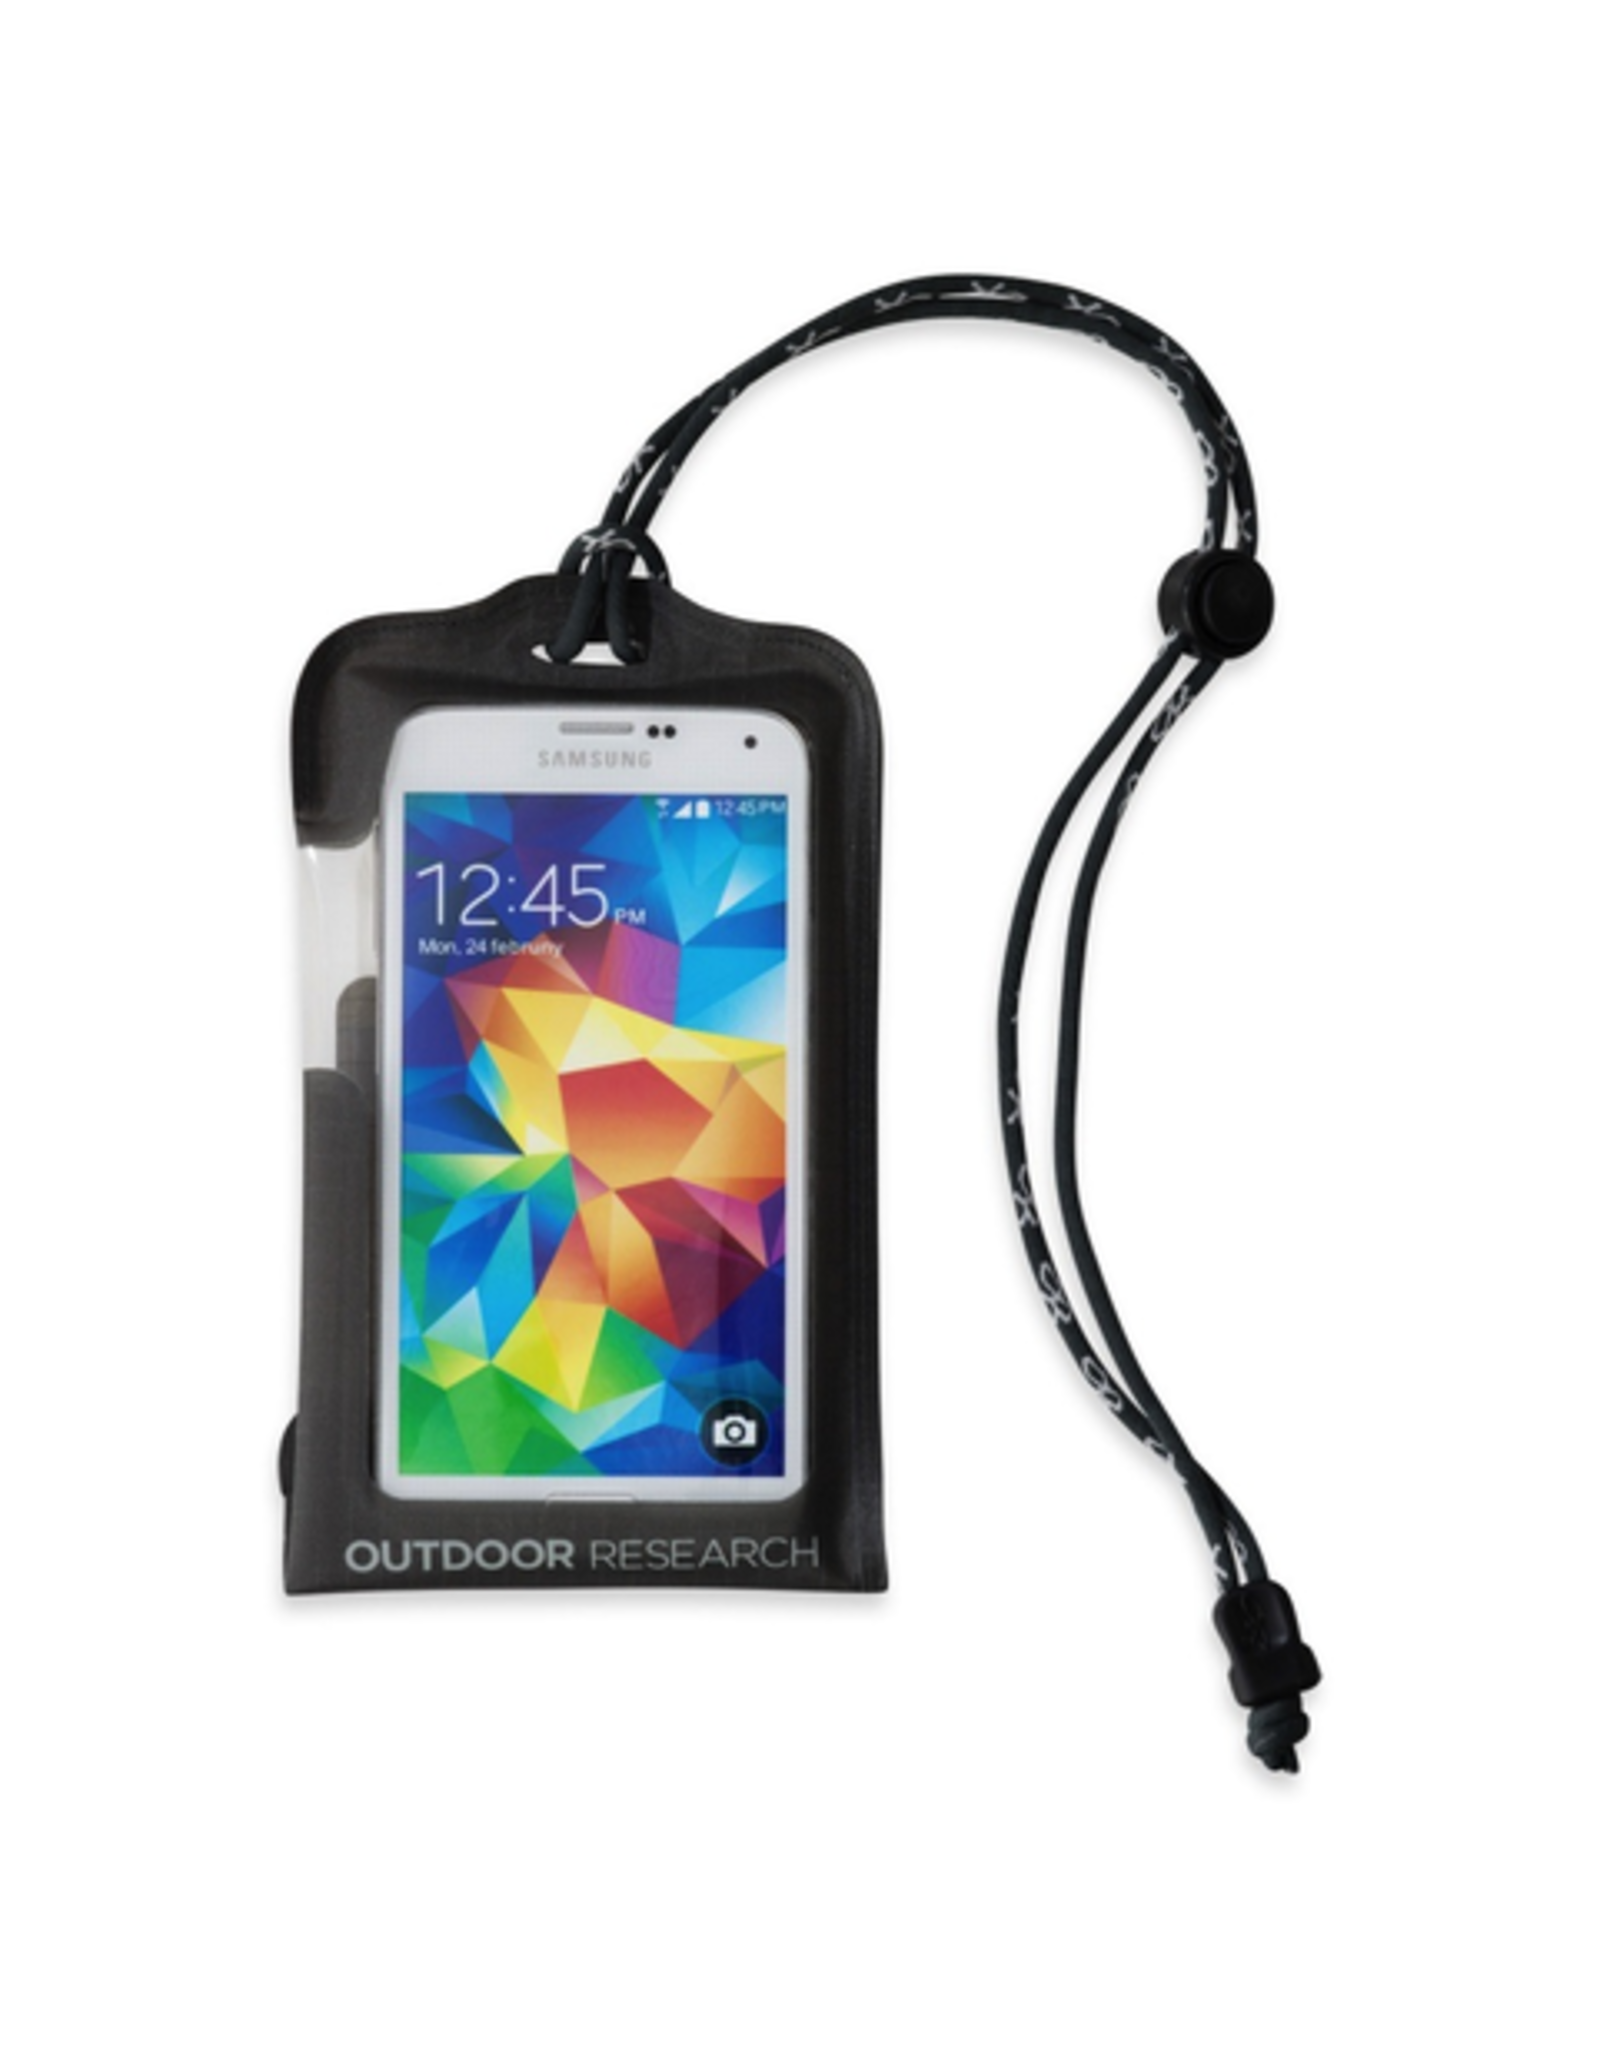 Outdoor Research OR Sensor Dry Pocket Smart Phone STD